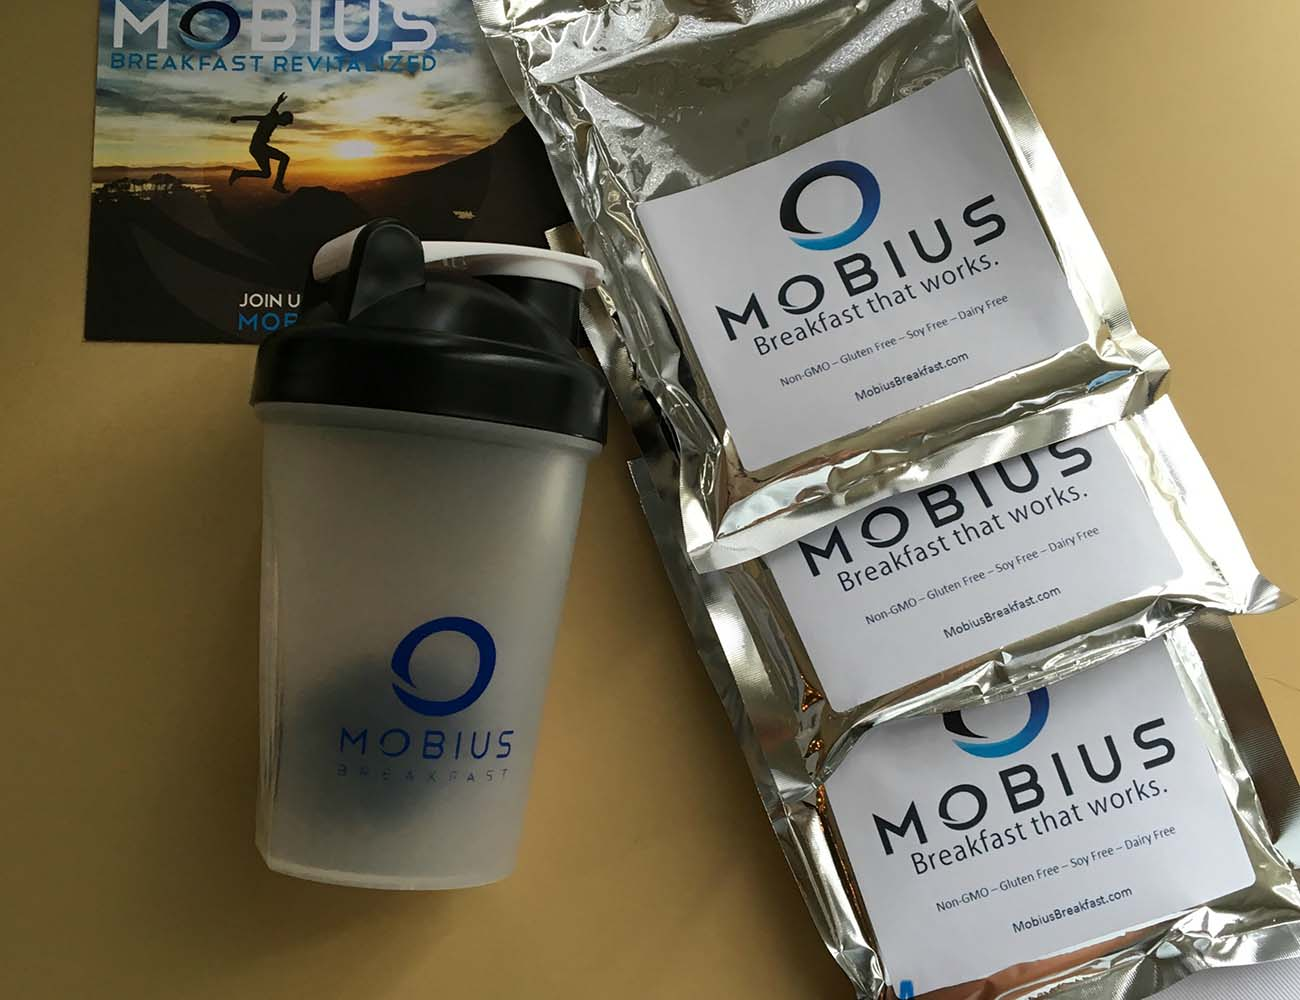 Mobius Breakfast That Works